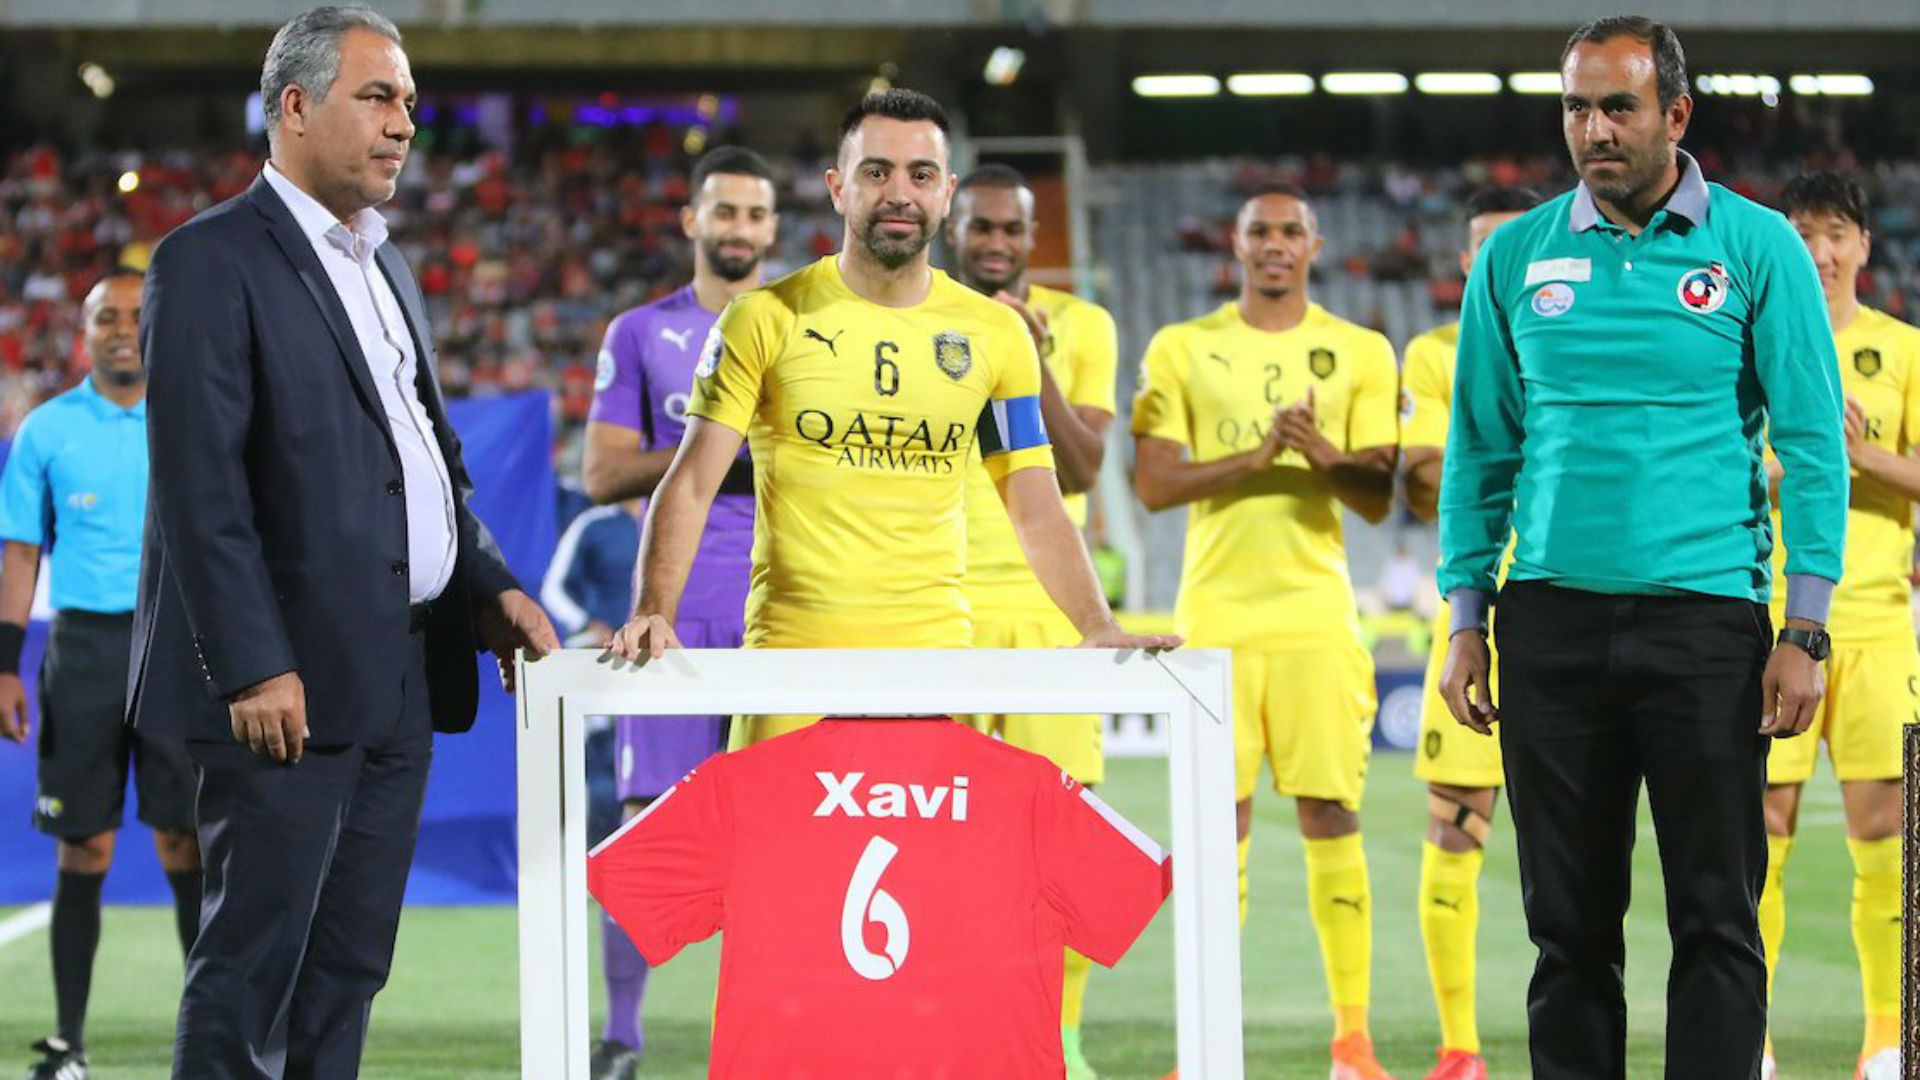 AFC Champions League Review: Xavi ends playing career with defeat